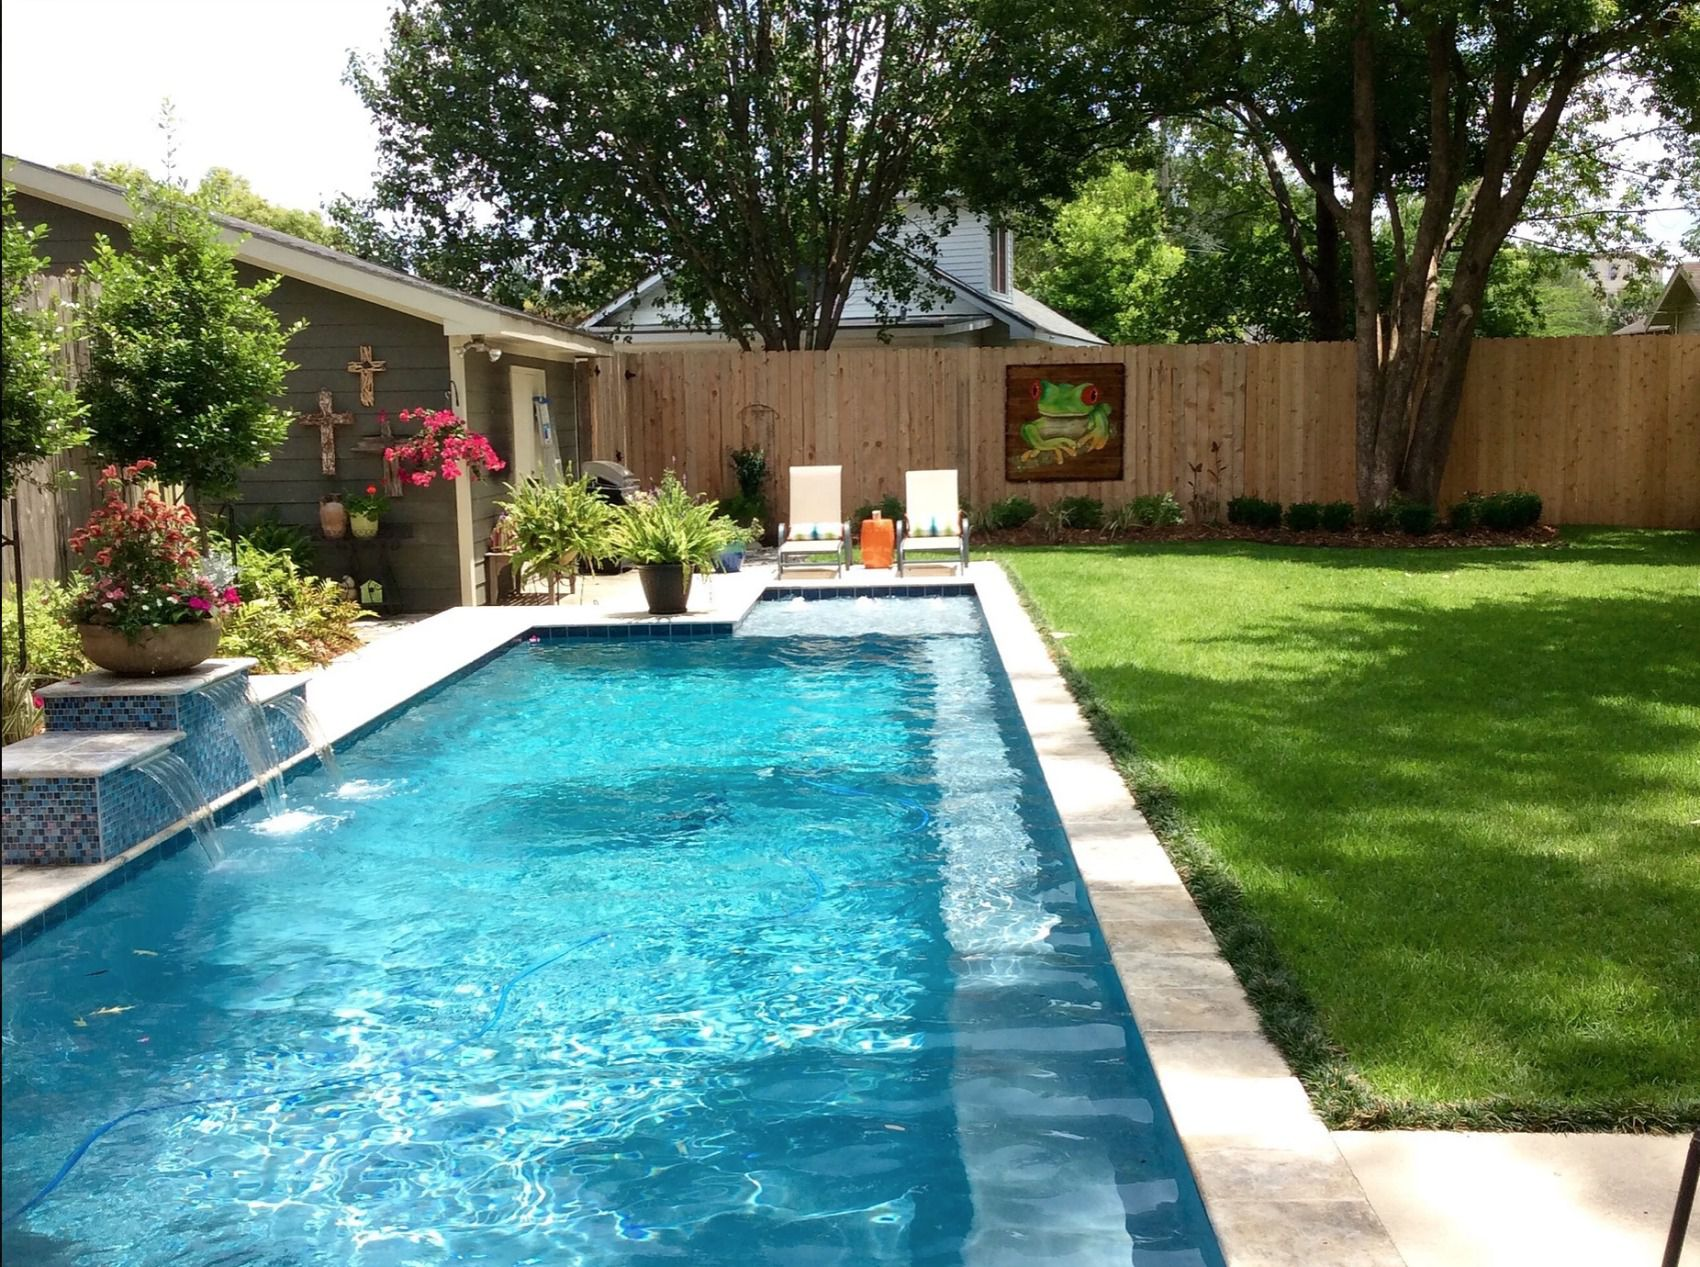 50 Backyard Landscaping Ideas to Inspire You on small fiberglass swimming pools, arizona backyard landscape ideas, small backyard fiberglass pools, backyard privacy ideas, small backyard wading pools, small backyard swimming pools, backyard steps ideas, small yard pools, small custom pools, small pools and spas, small above ground pools, small inground pools, small farm ideas, backyard design ideas, small pools for small backyards, small backyards with pools, small pool designs, small swimming pool slides, small backyard pavilions, small backyard lighting,